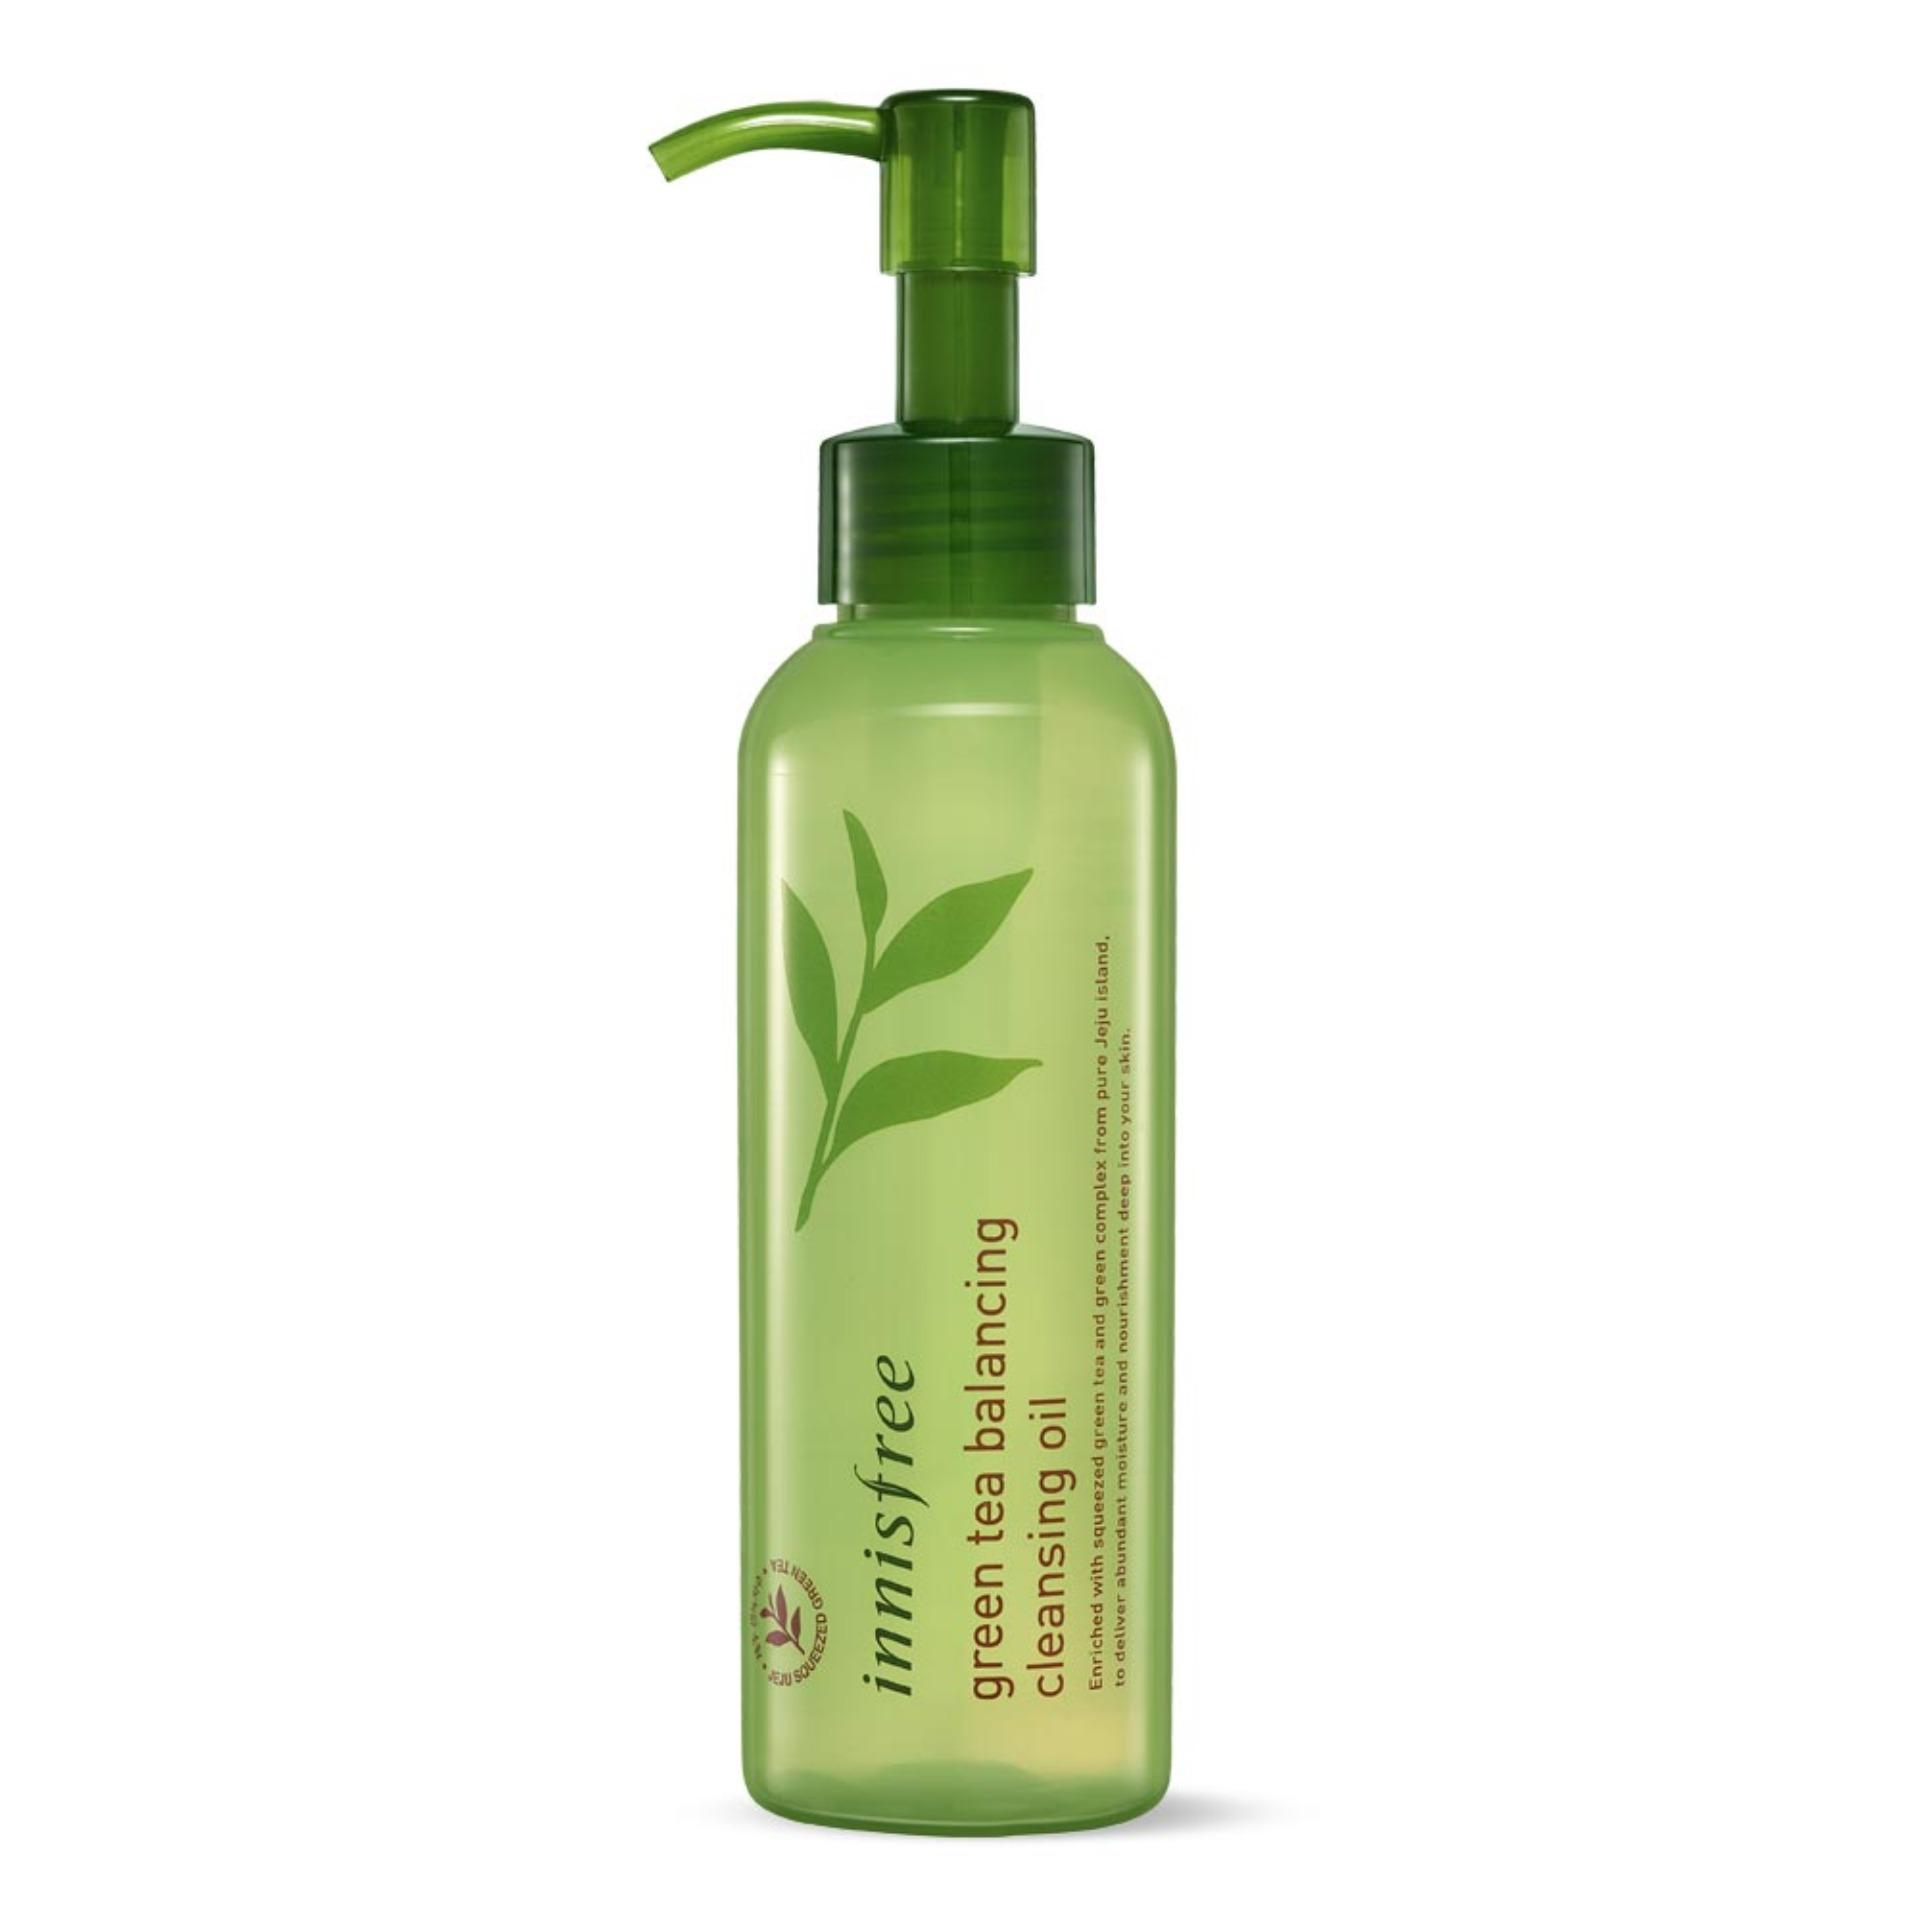 Check For Price Of Innisfree Green Tea Balancing Lotion 160ml Update Special Kit 4 Items Cleansing Oil 150ml